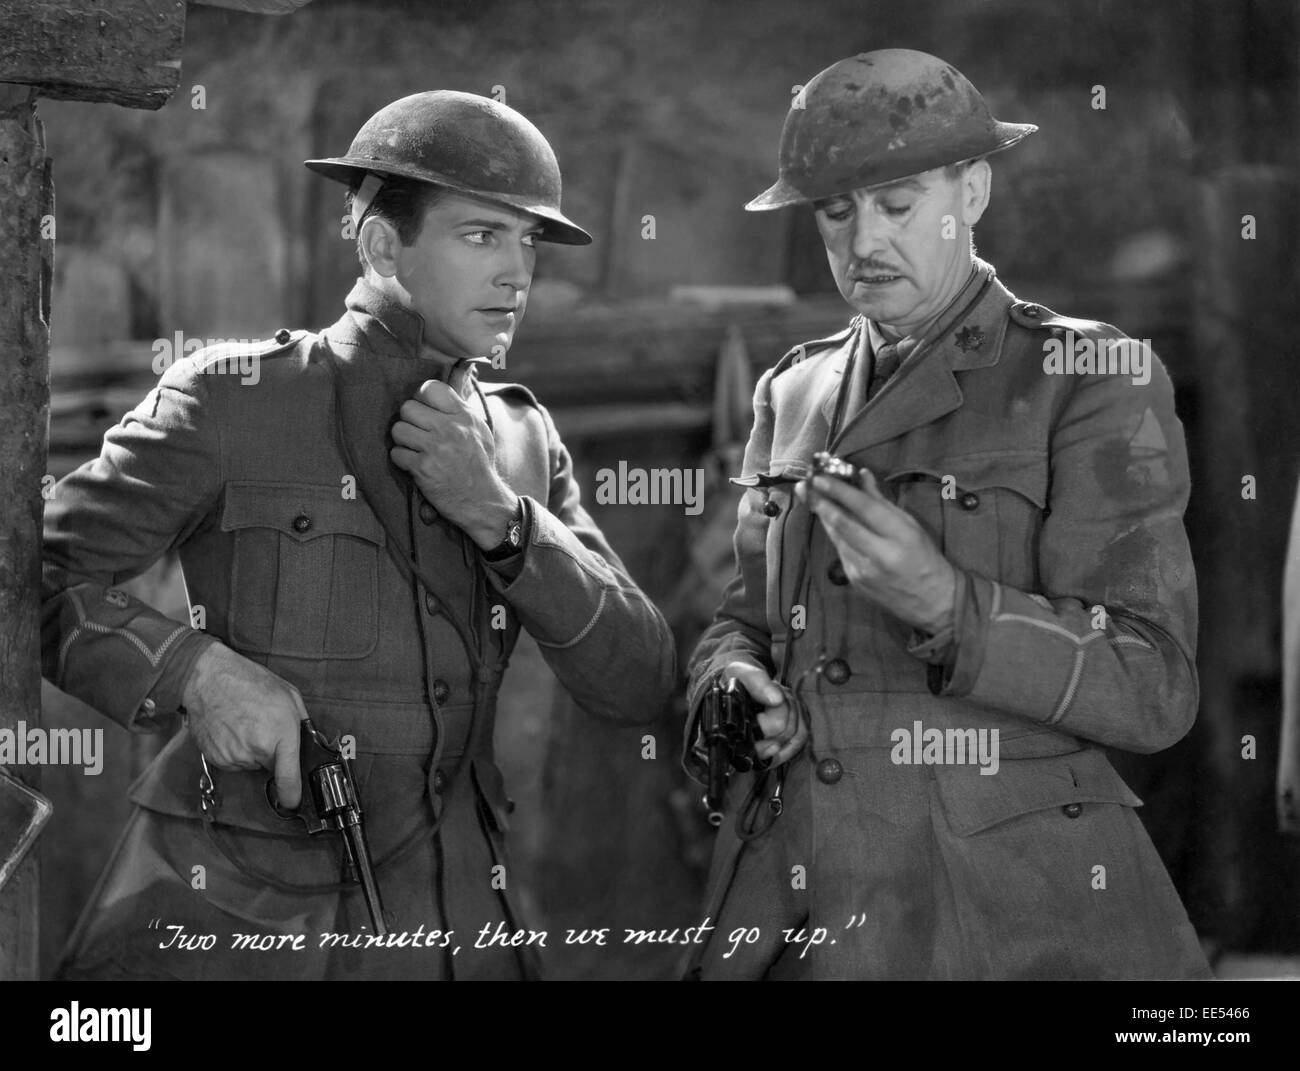 David Manners, Ian Maclaren, on-set of the Film, 'Journey's End', 1930 - Stock Image